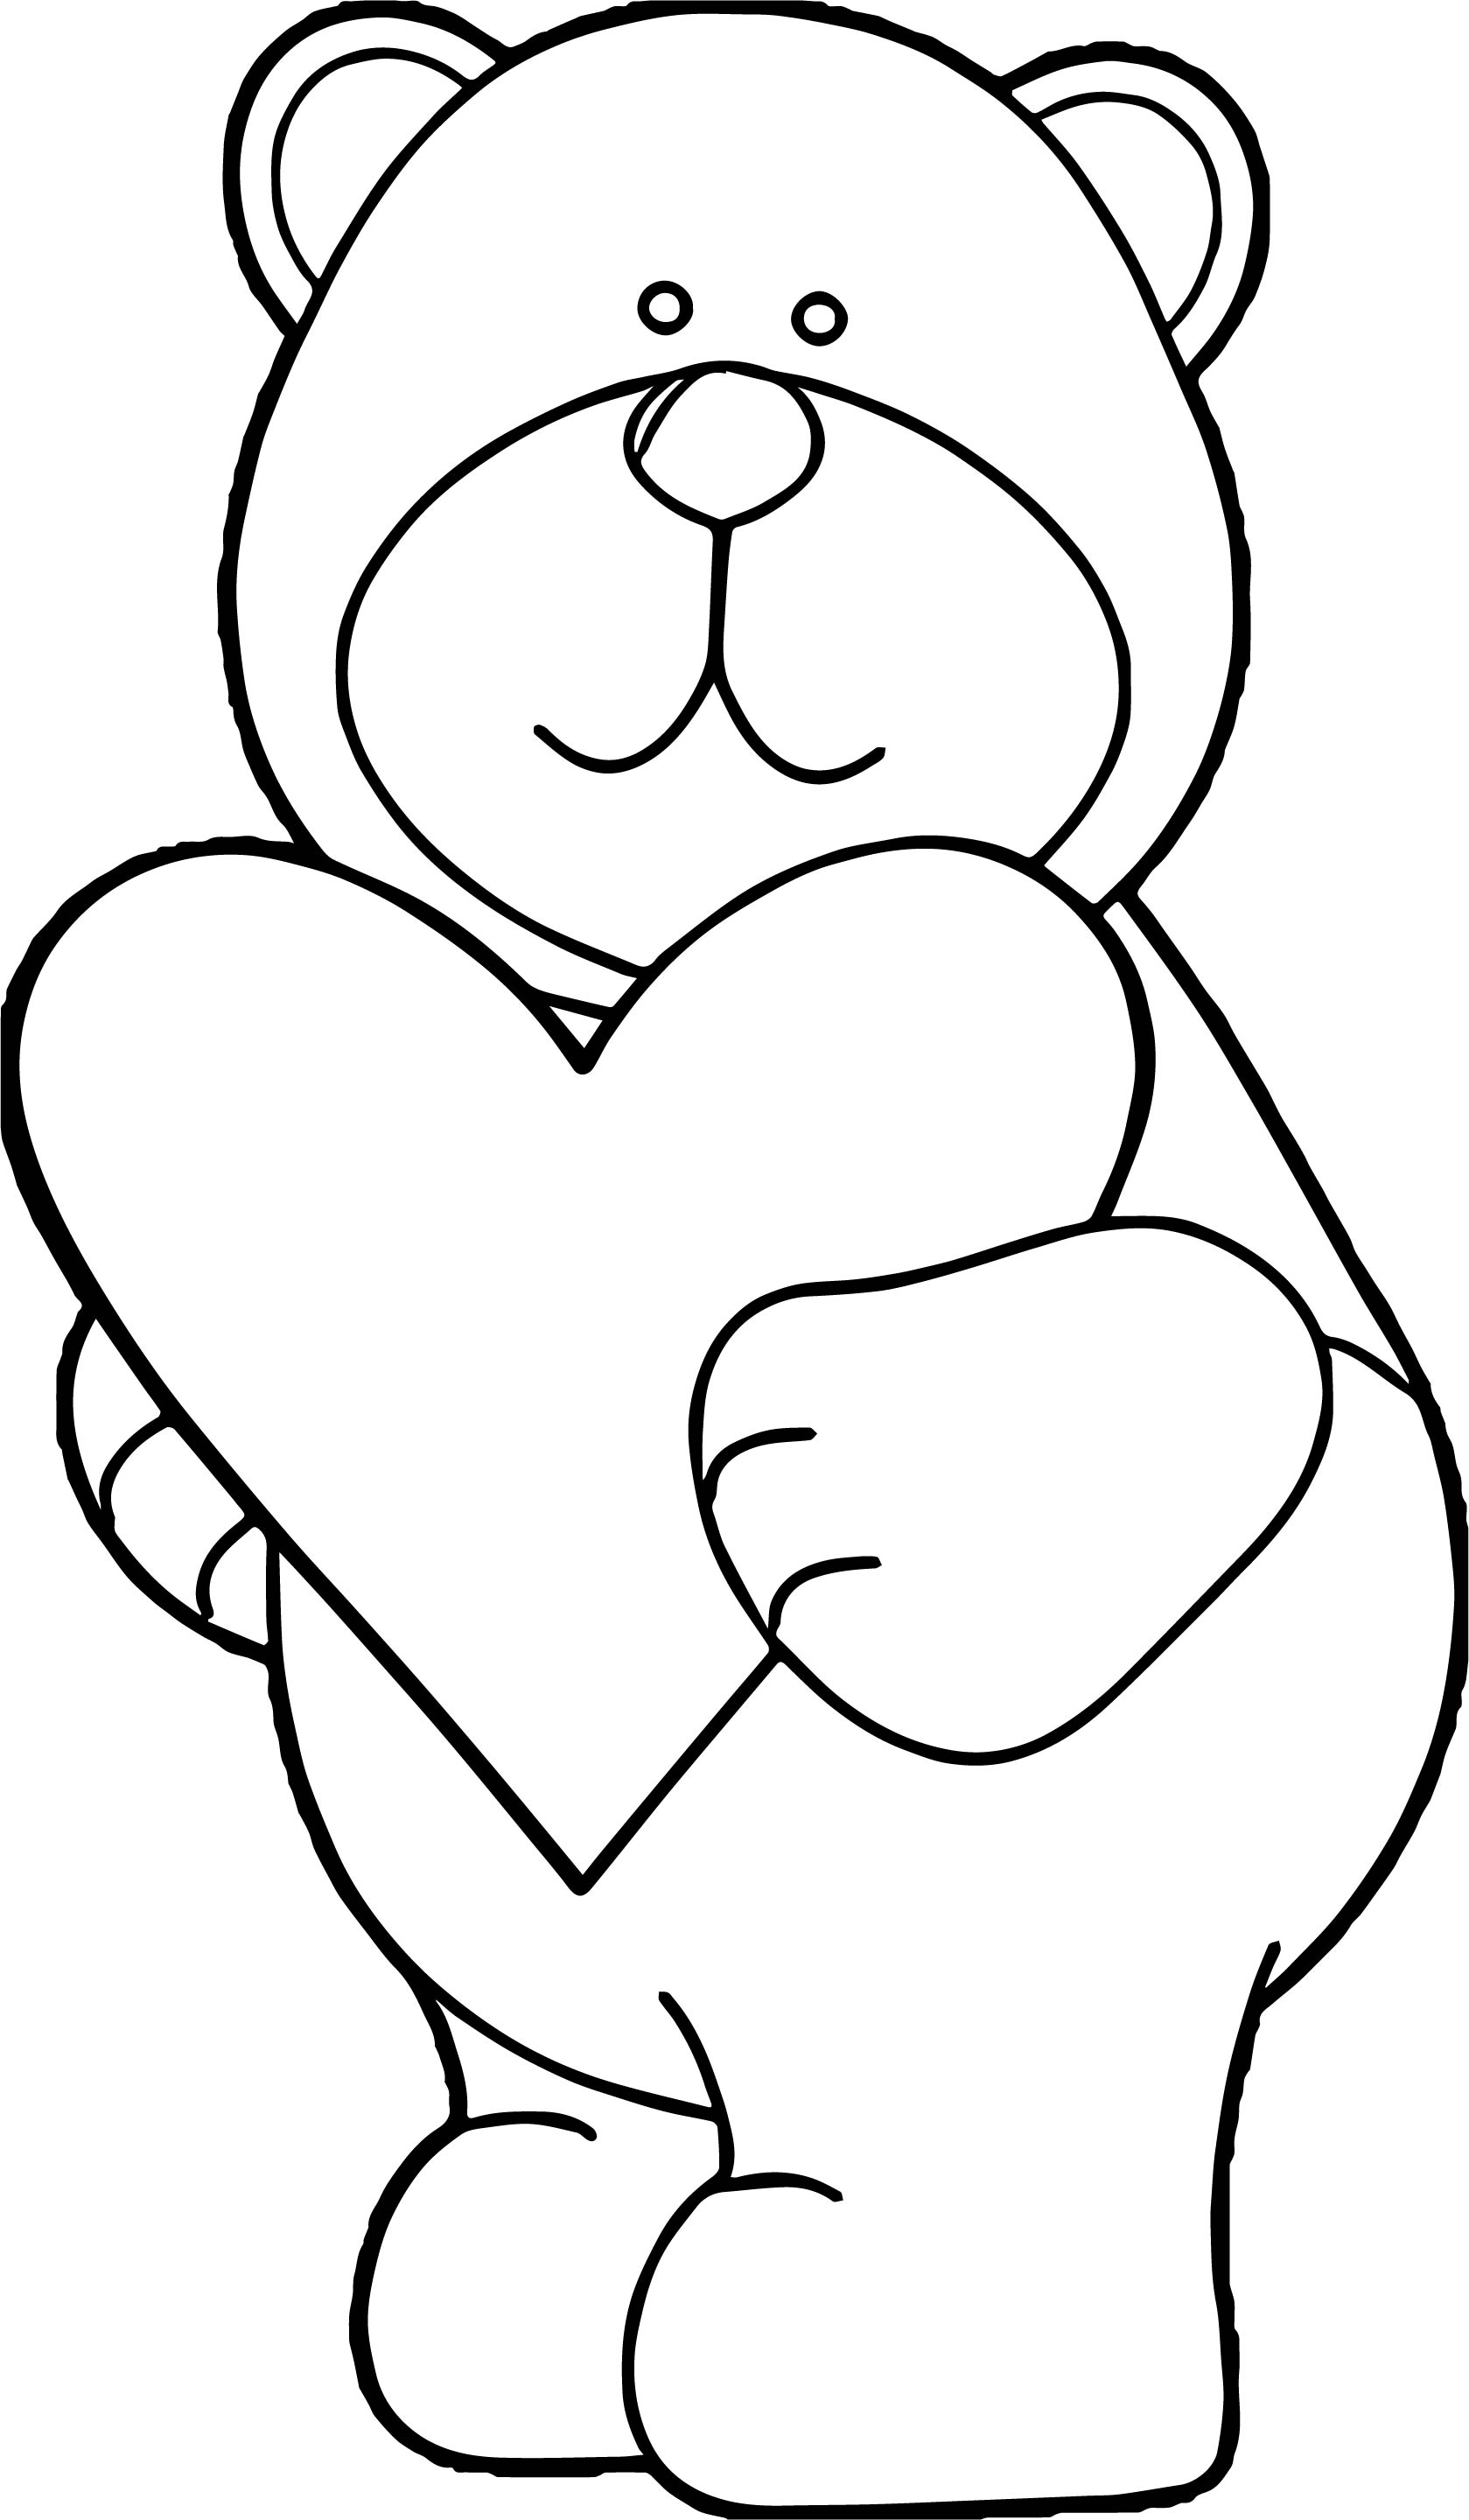 coloring pages teddy bear heart | Bear Heart Coloring Page | Wecoloringpage.com